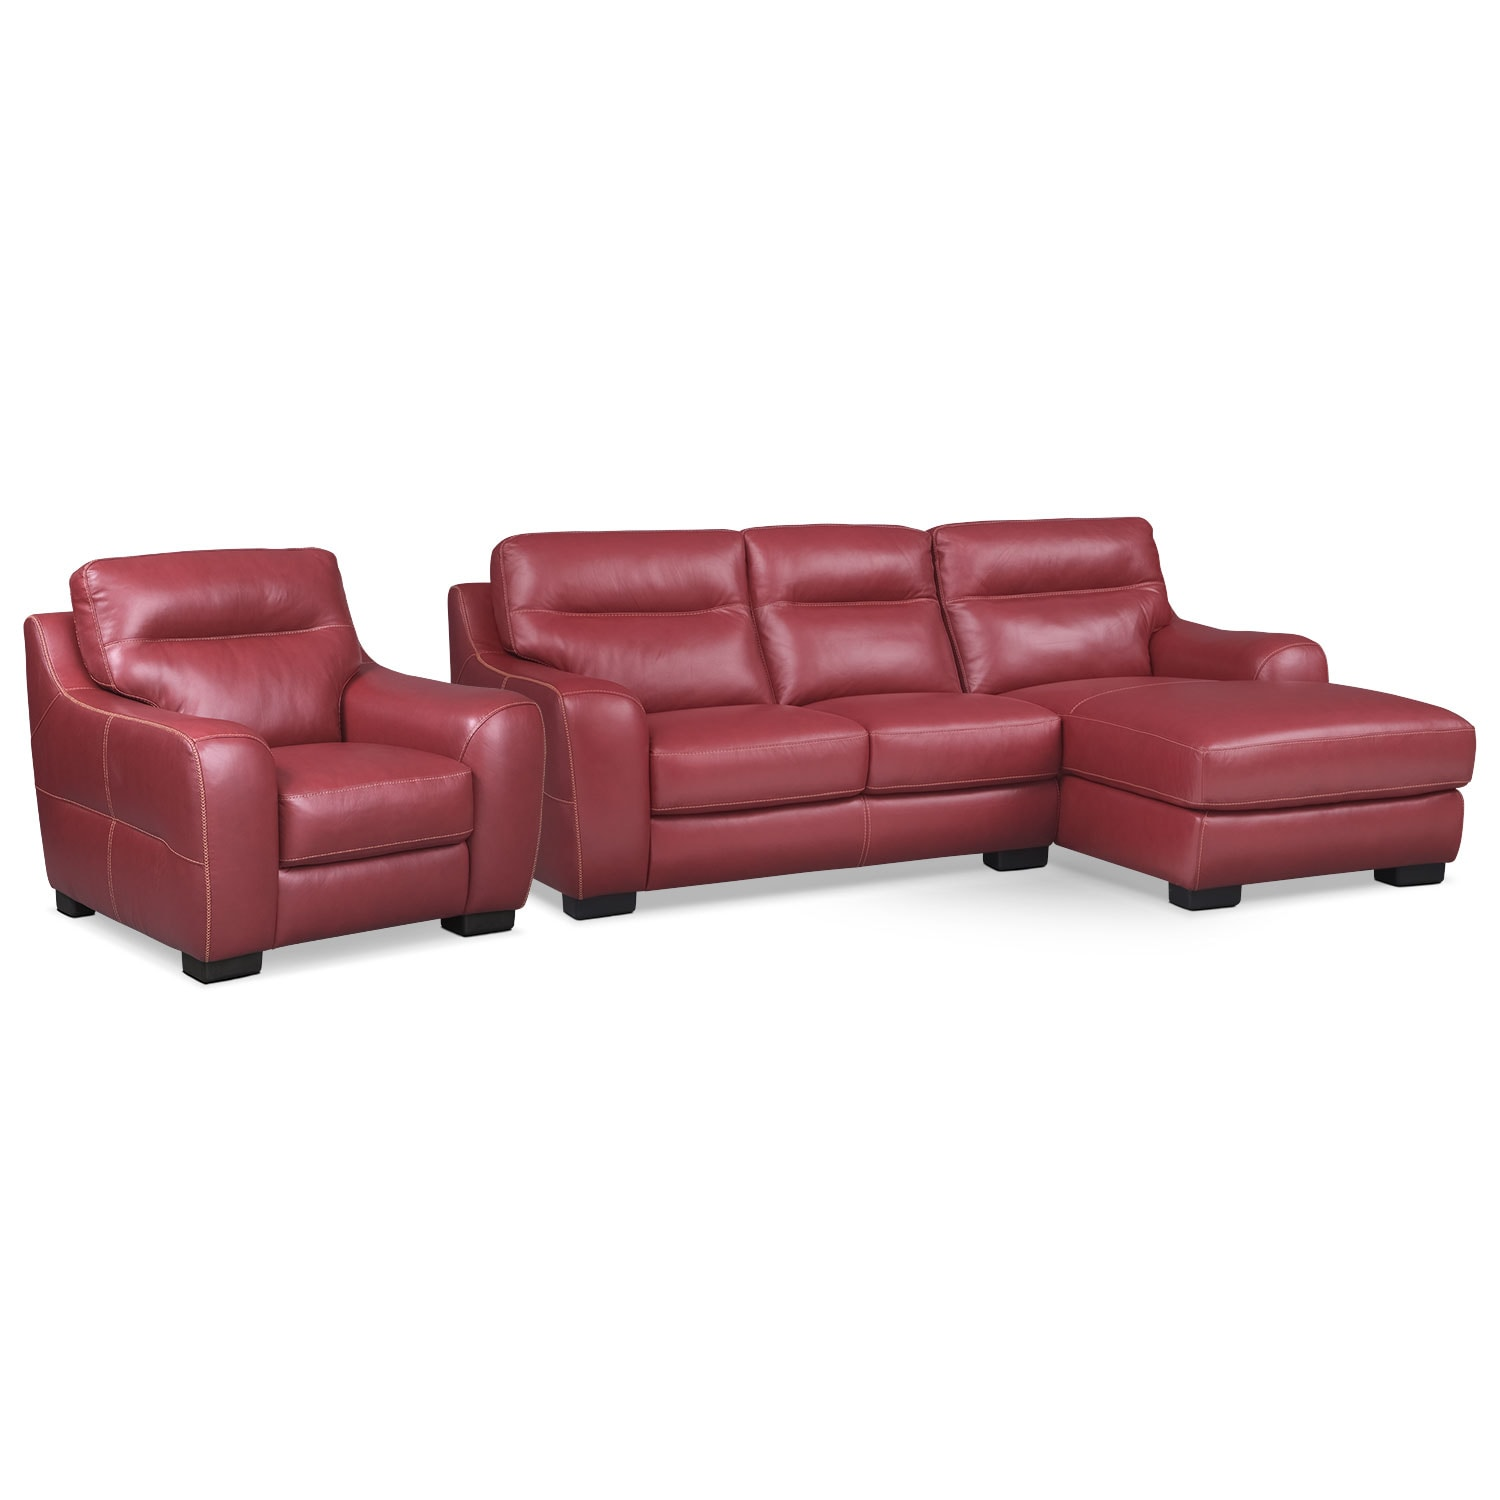 Living Room Furniture - Rocco Red 2 Pc. Right-Facing Chaise Sectional and Chair